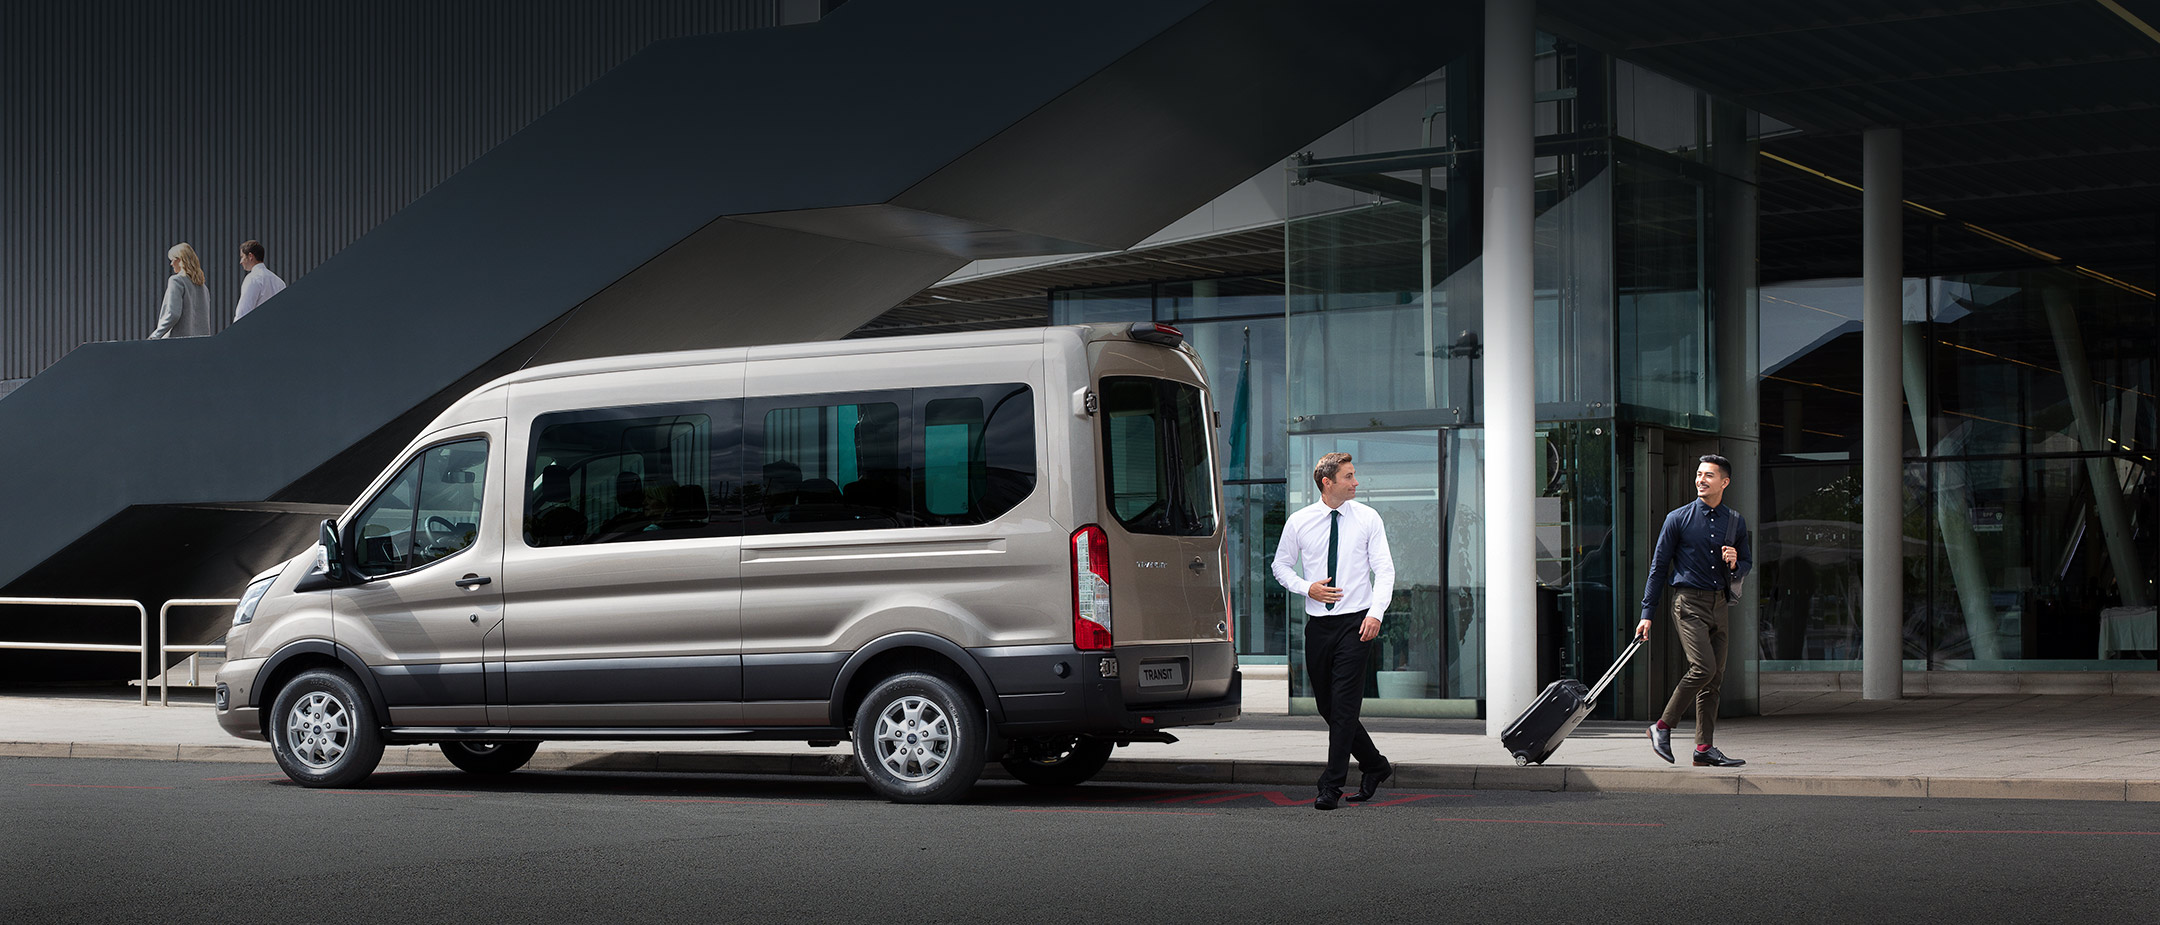 All New Ford Transit Minibus side view parked outside building